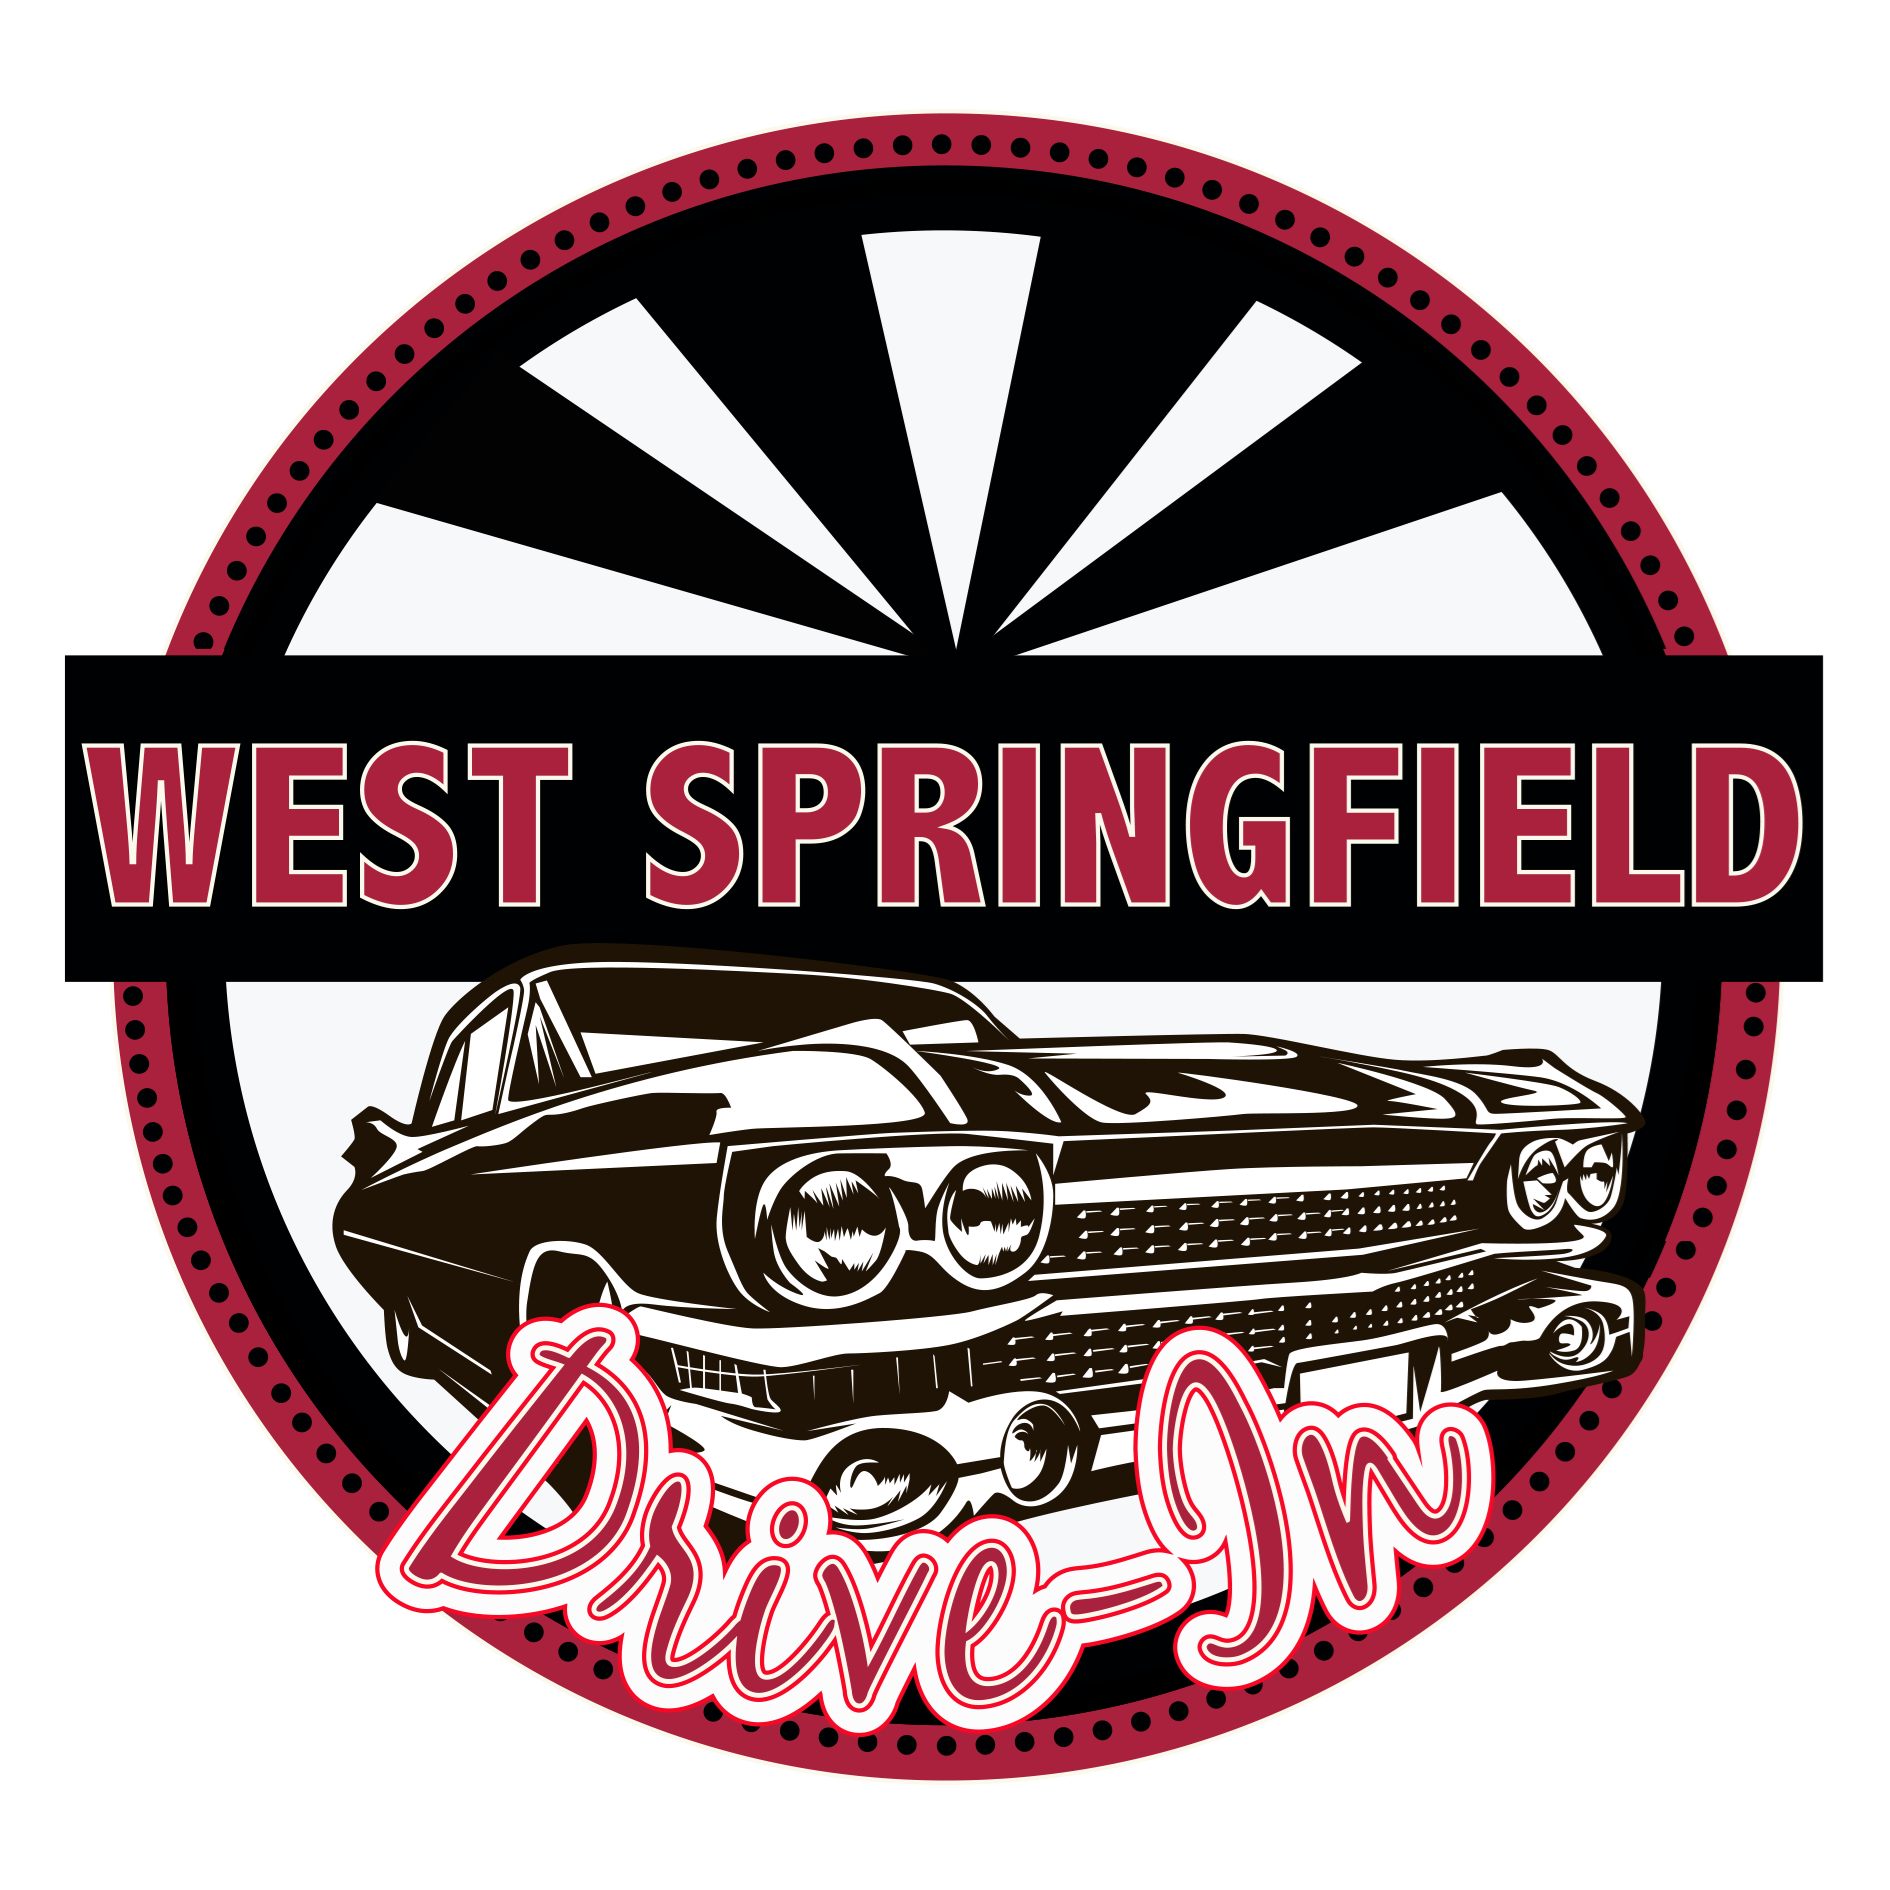 West Springfield Drive-In